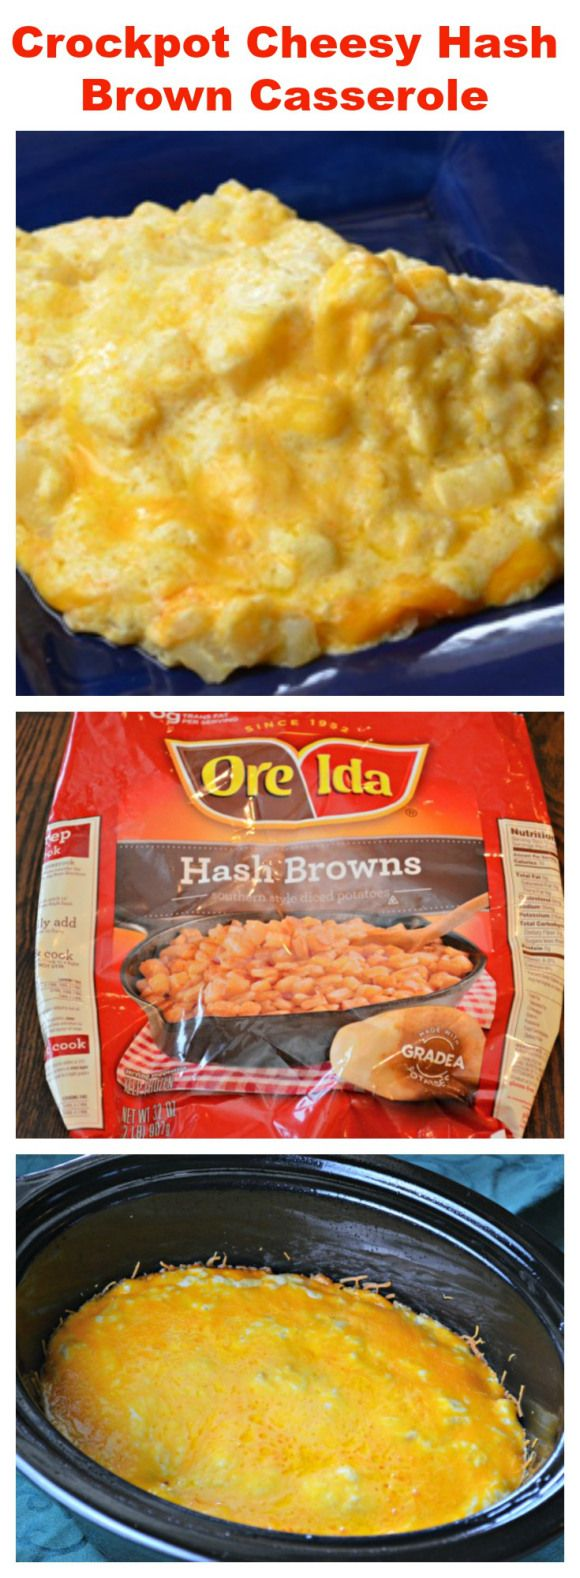 Seems they stay moister in a crockpot. Dry Hashbrowns are yuck.